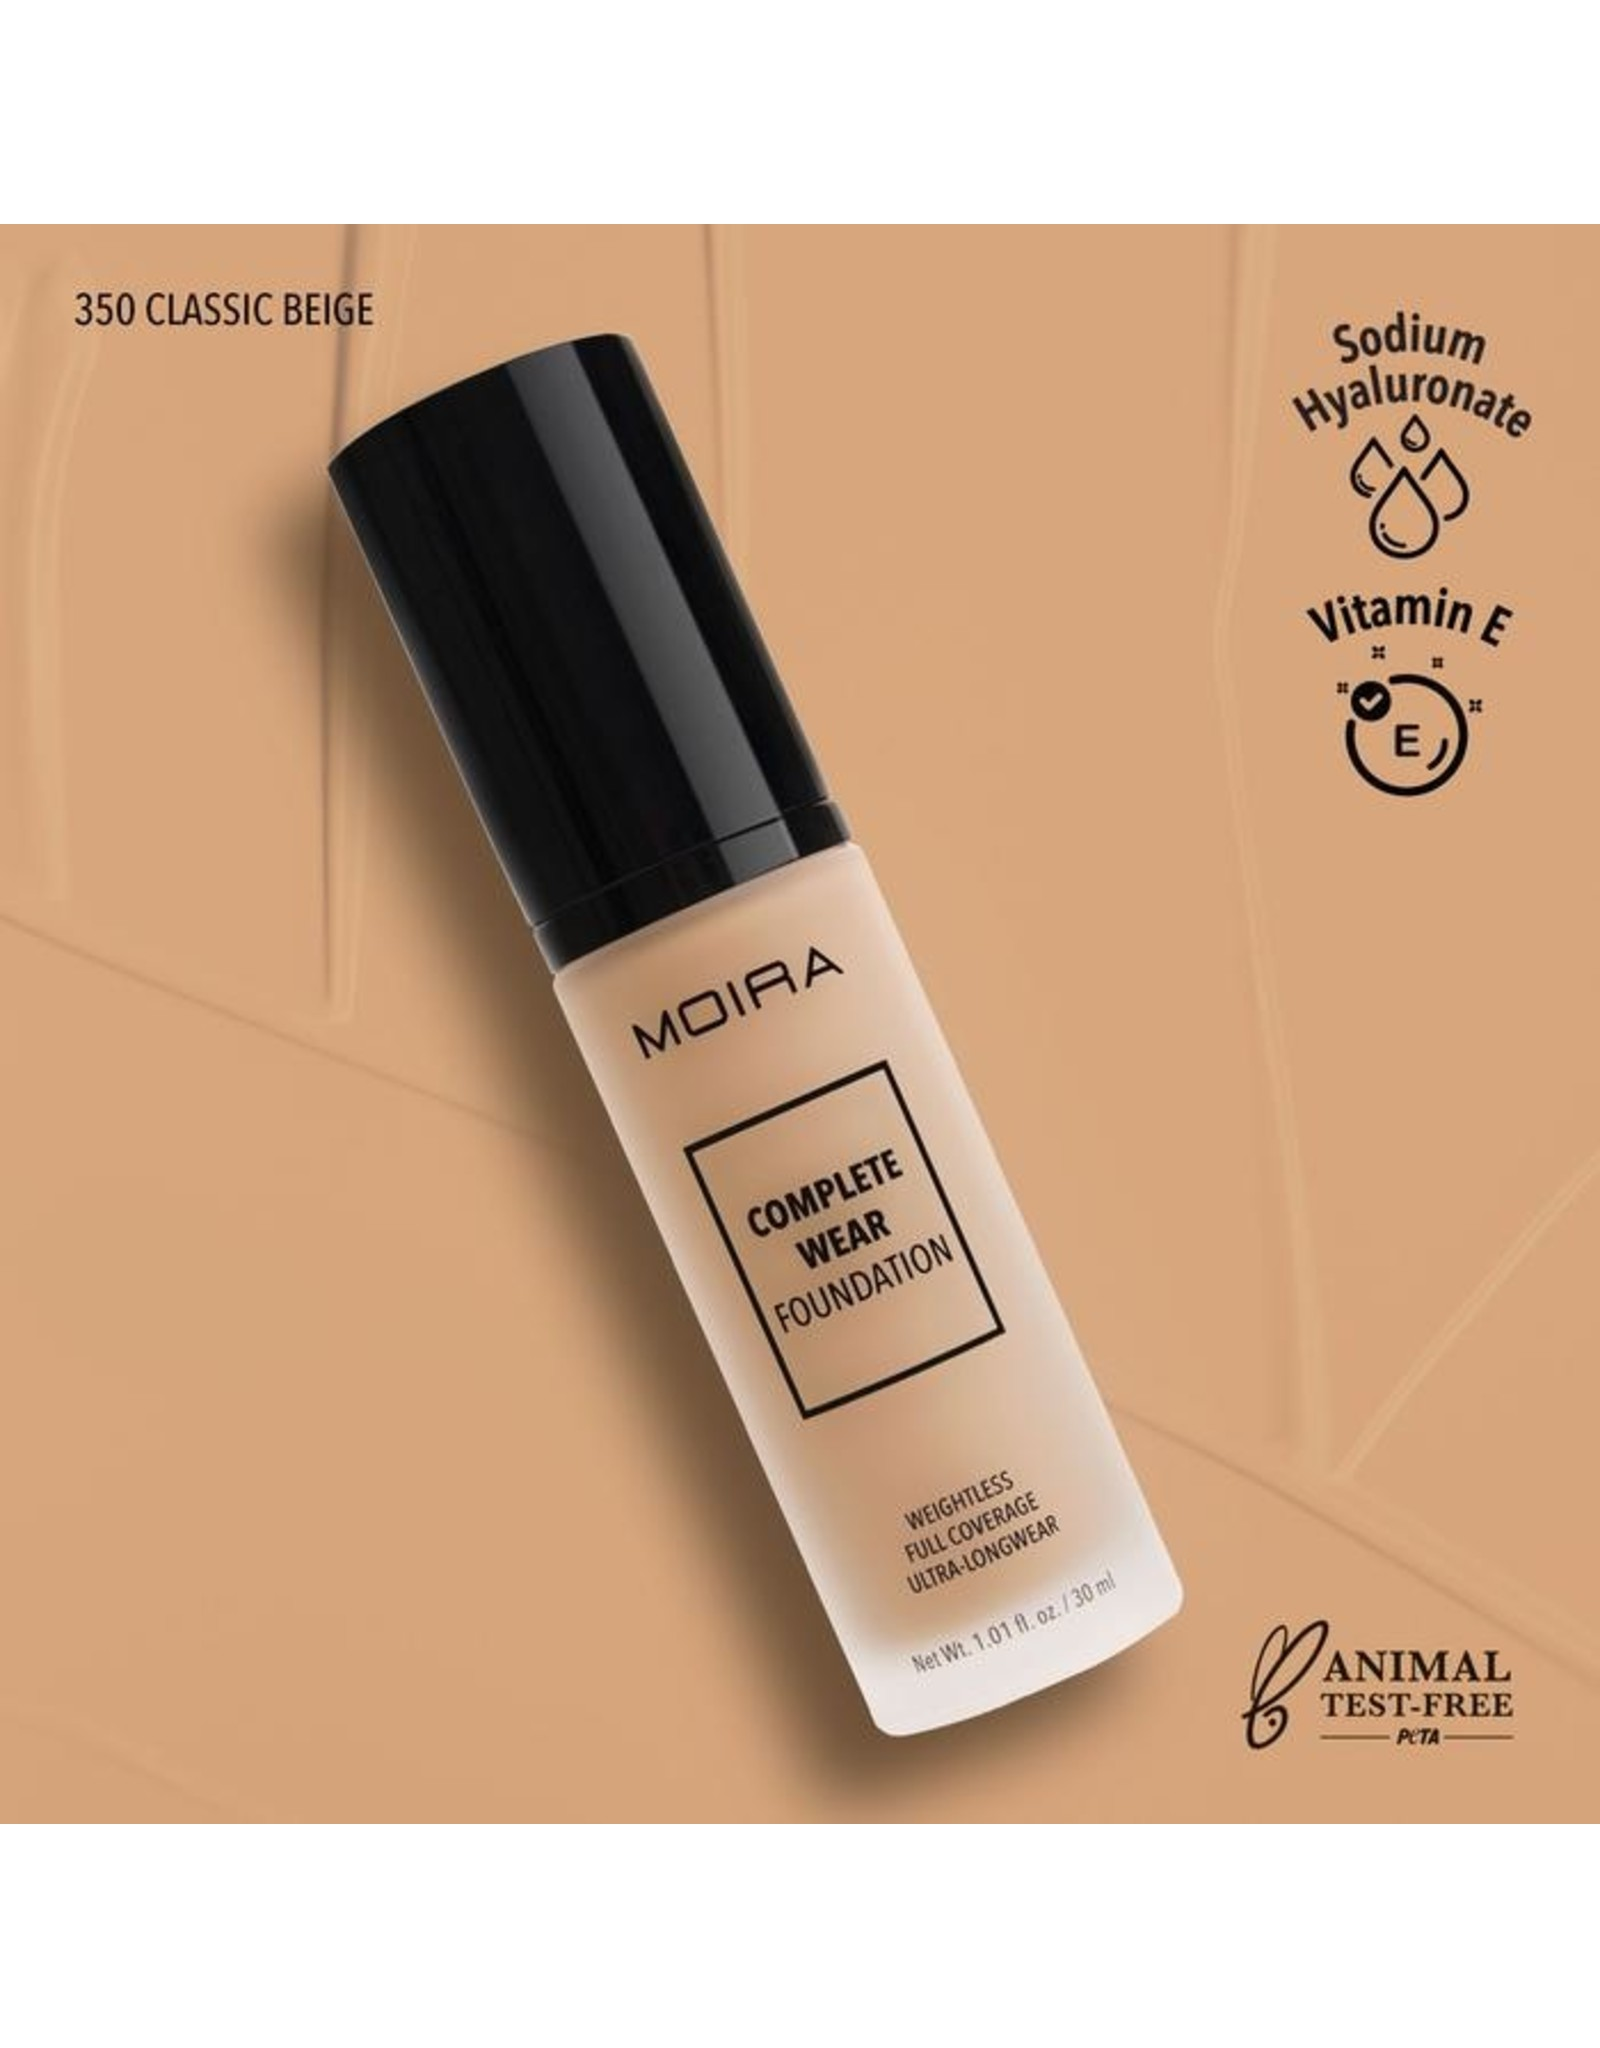 Moira Complete Wear Foundation 350 Classic Beige